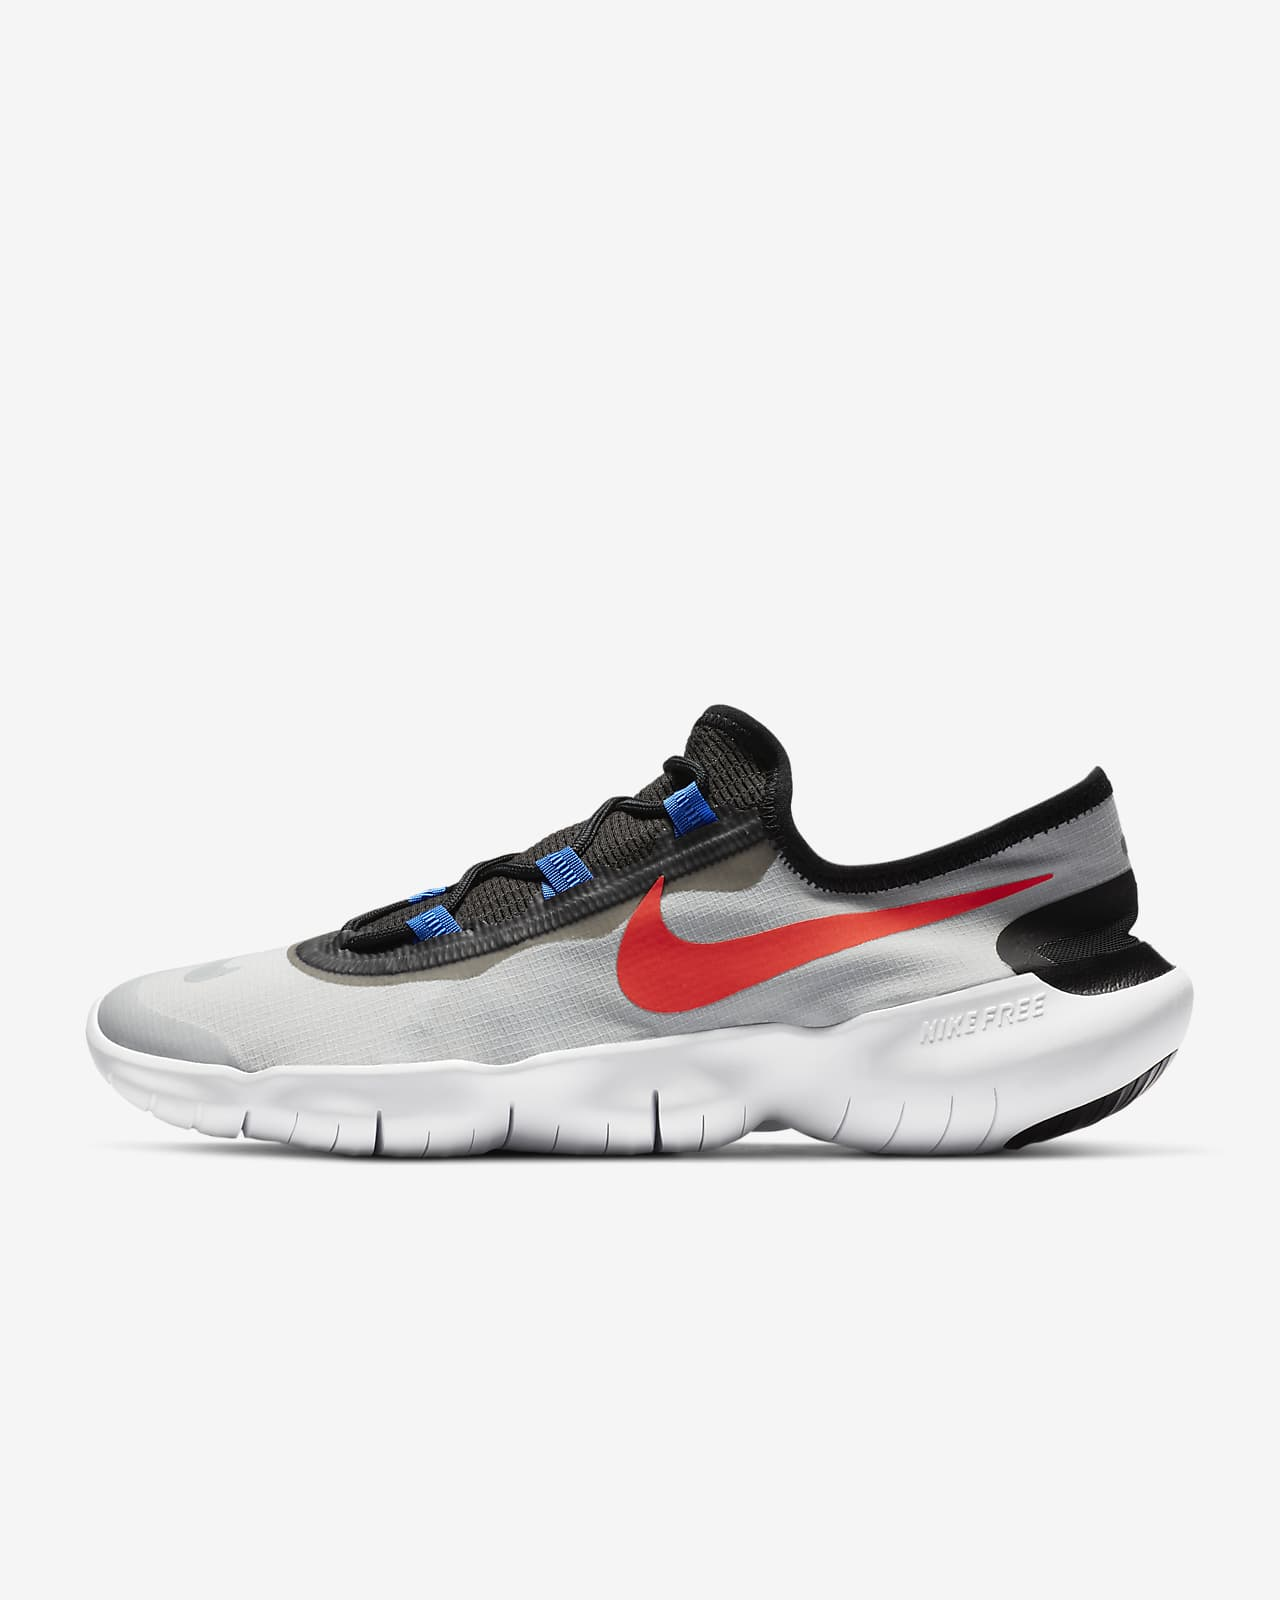 Nike Free RN 5.0 2020 Men's Running Shoe